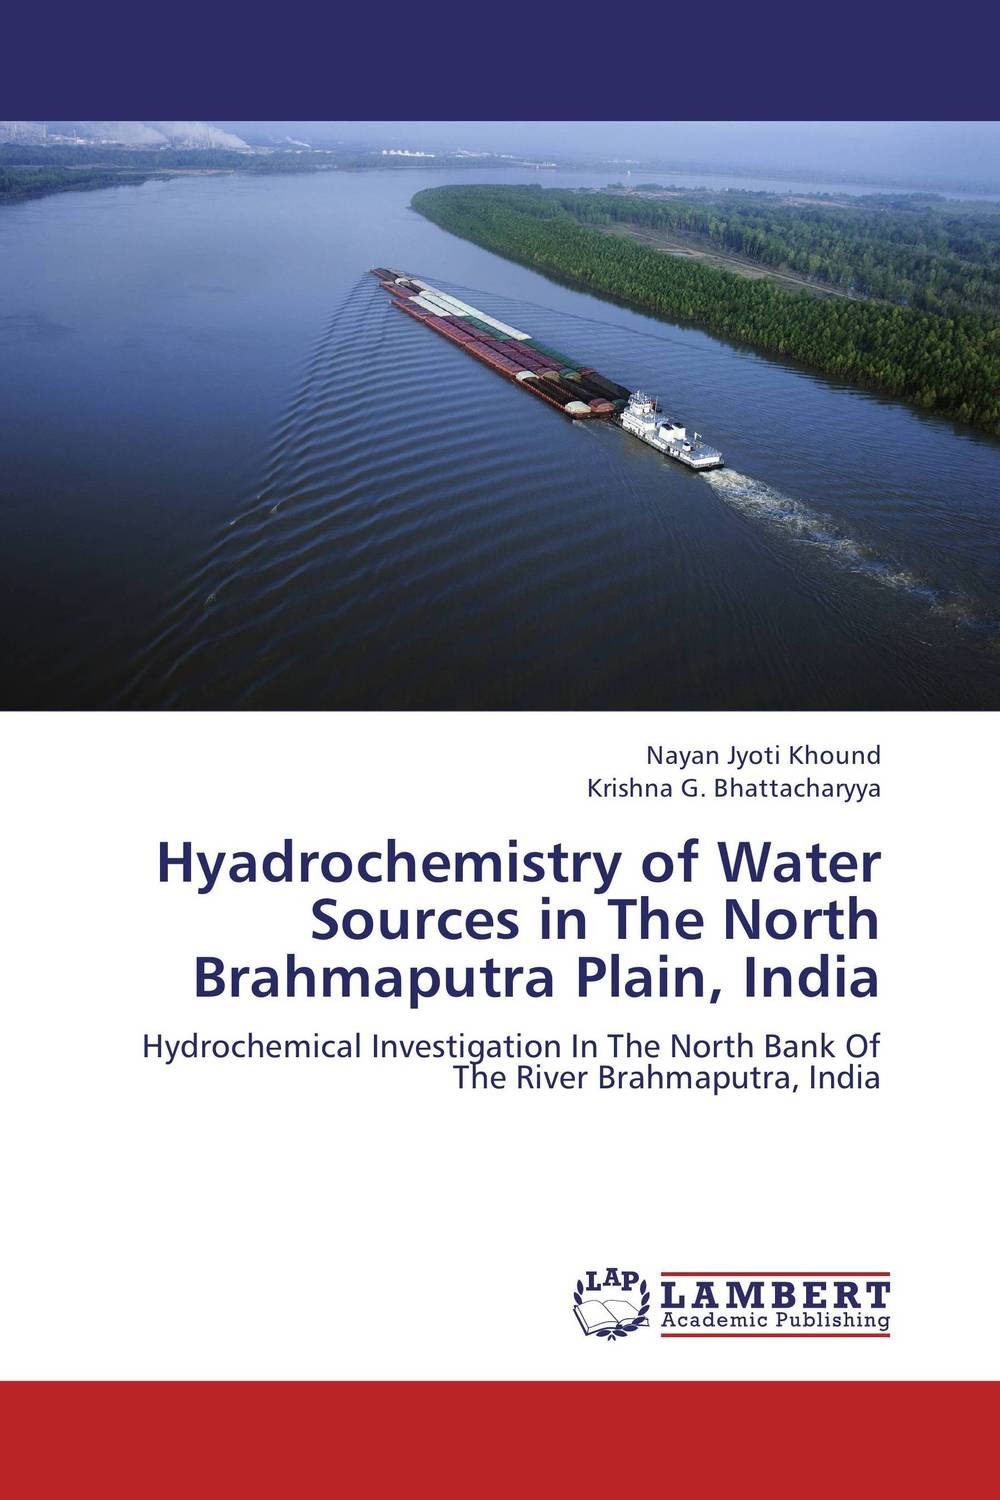 Hyadrochemistry of Water Sources in The North Brahmaputra Plain, India traditional sources of power among oraons of sarna toli jashpur nagar